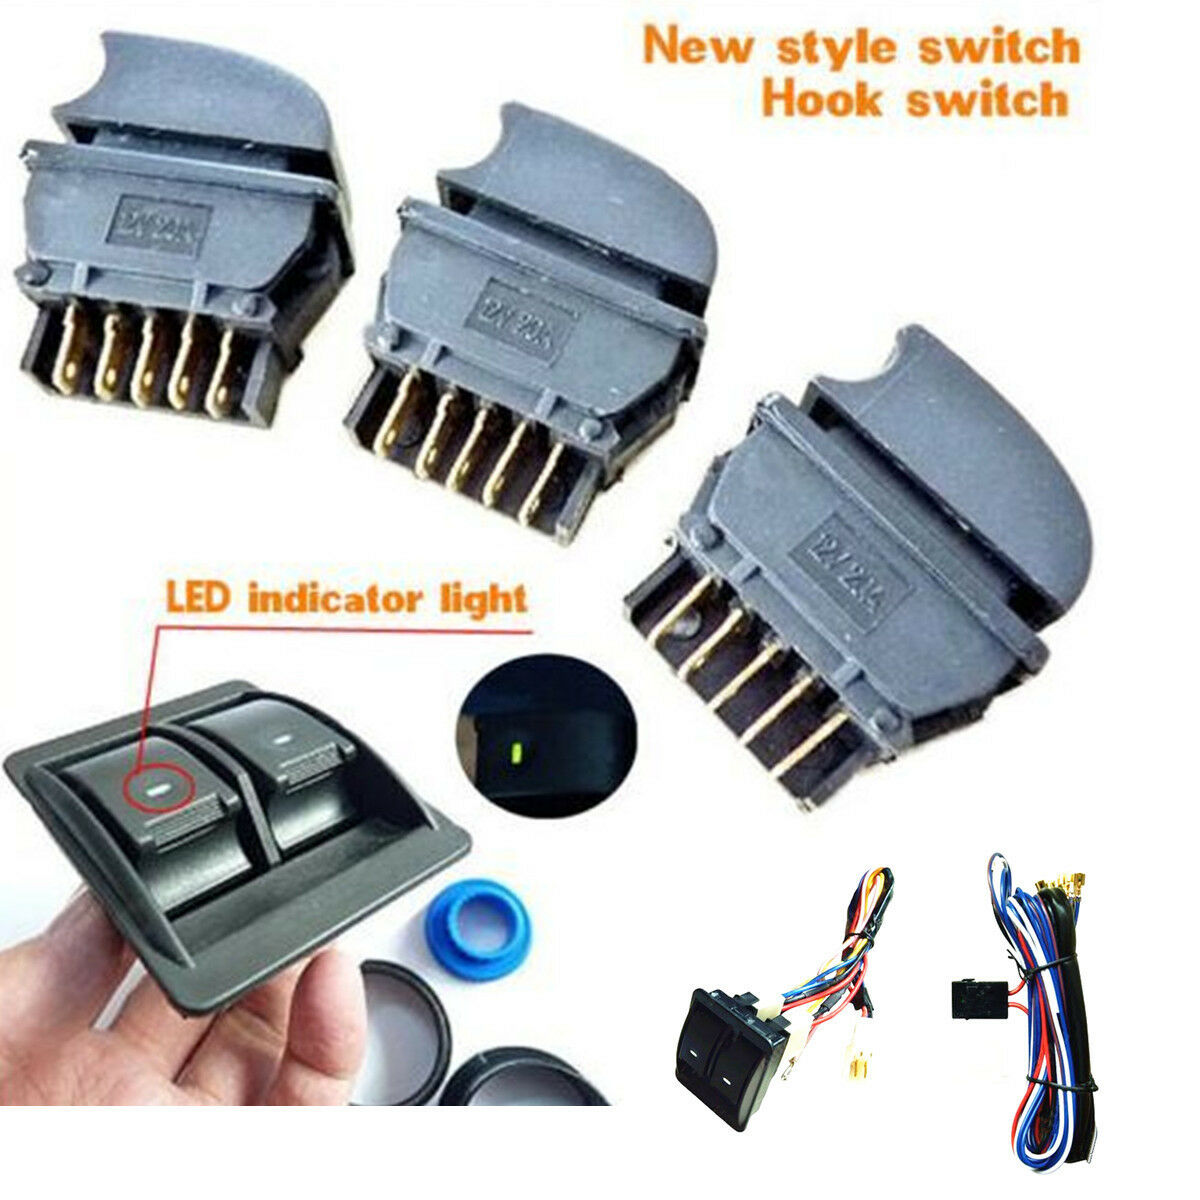 s l1600 12v car power window switch with wire harness universal kits universal 12 volt wiring harness at reclaimingppi.co